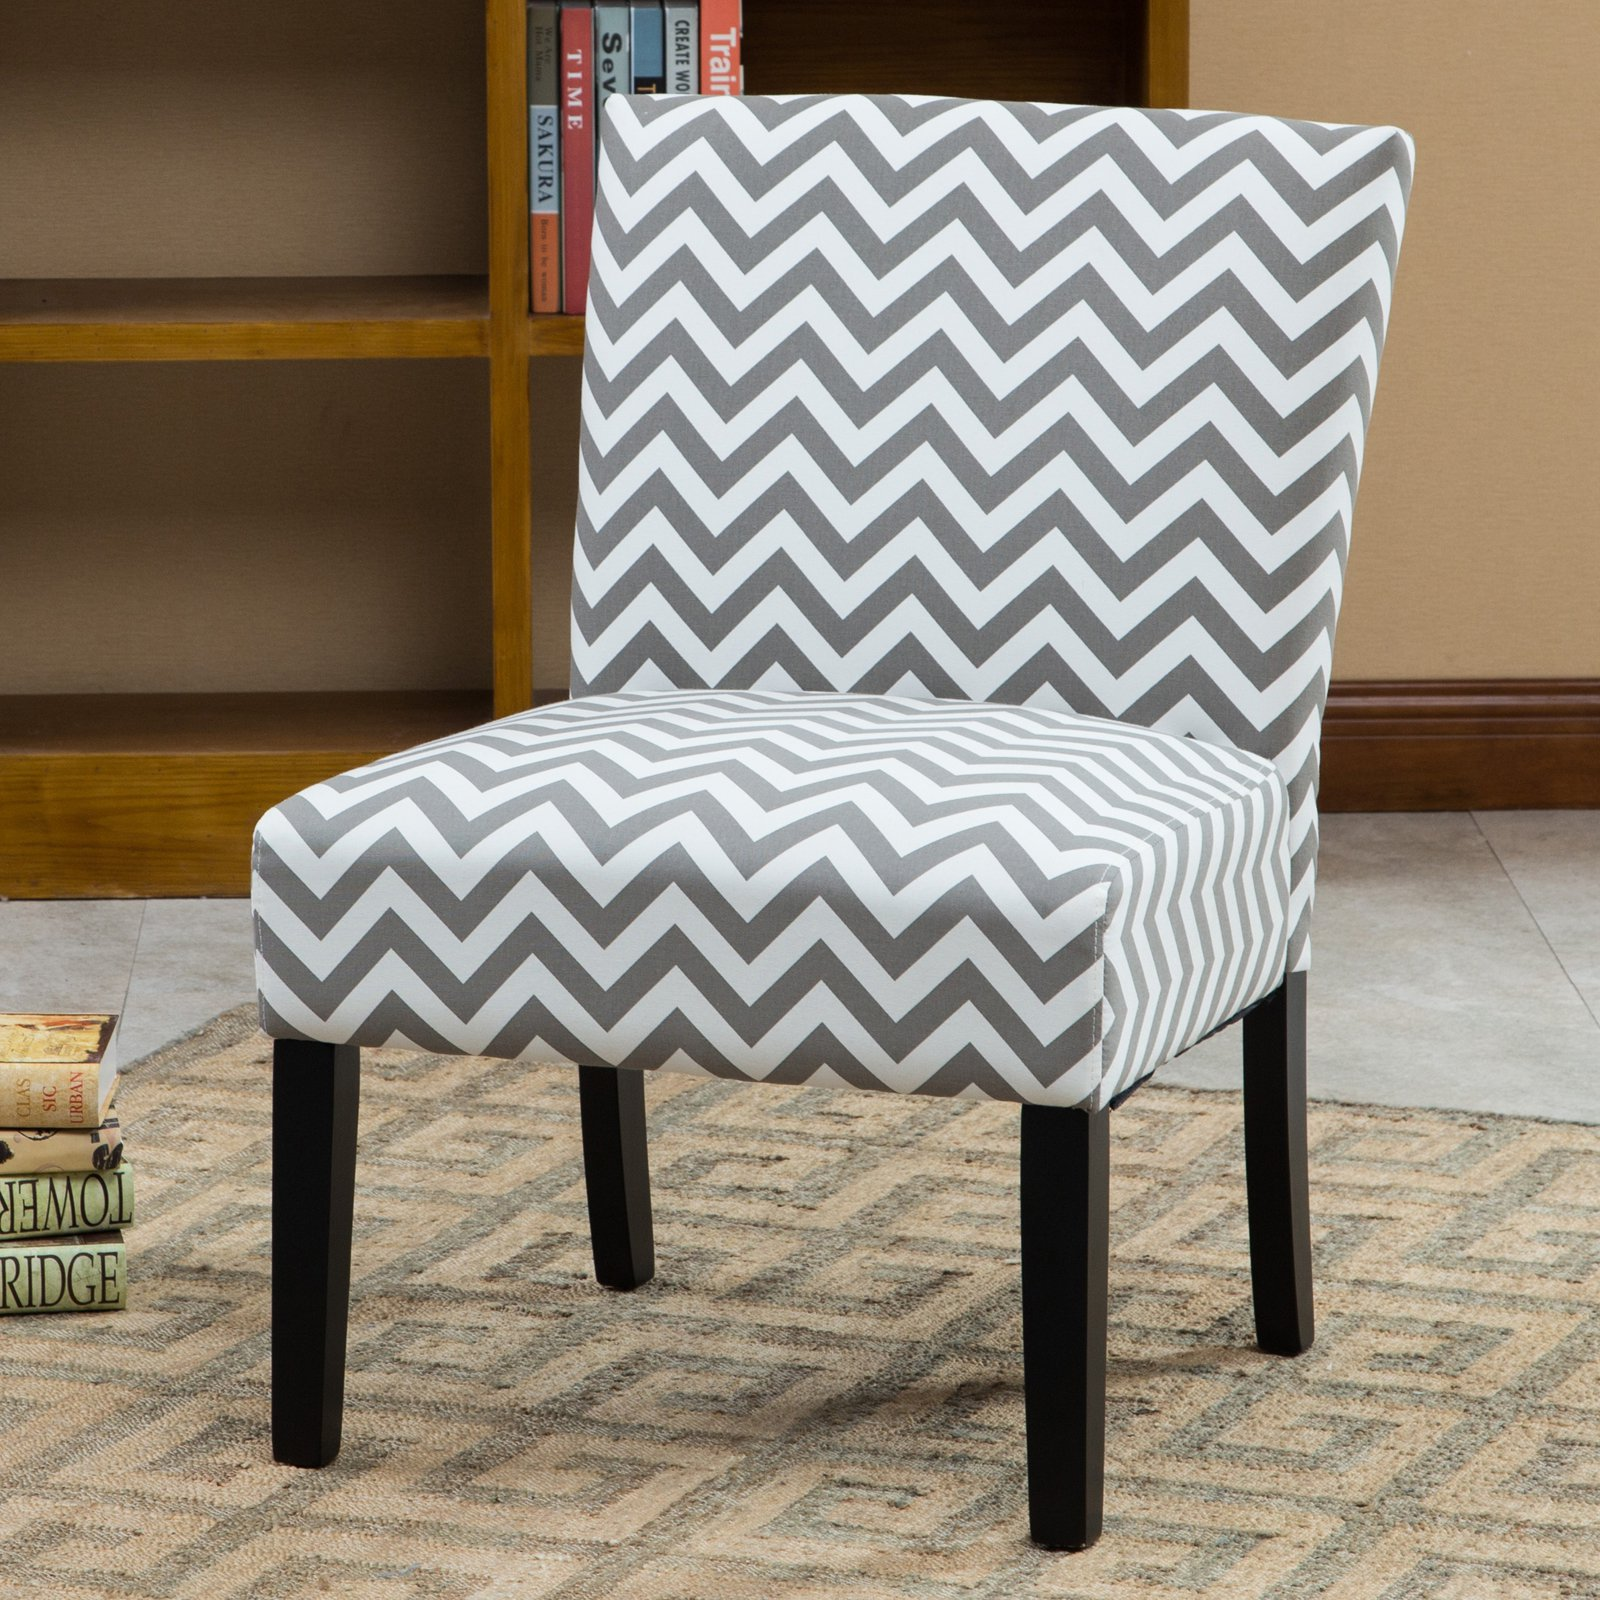 Roundhill Botticelli Grey Wave Print Fabric Armless Contemporary Accent Chair, Single by Roundhill Furniture Inc